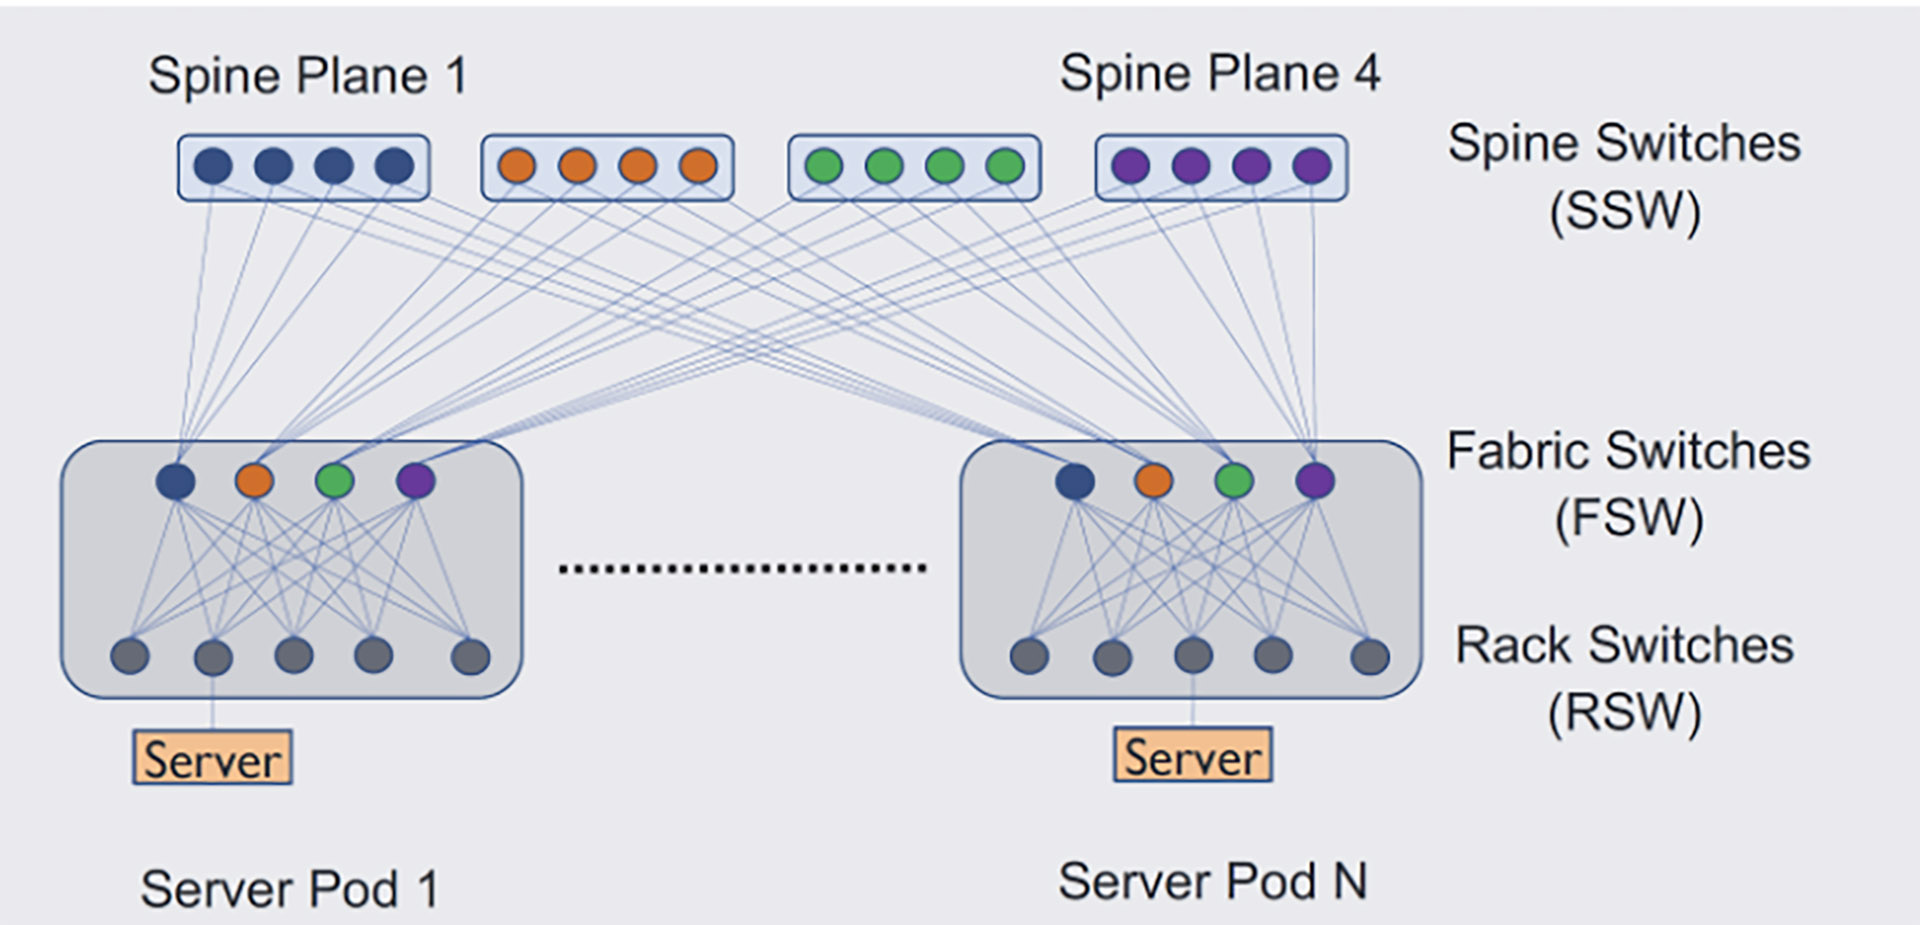 Data center fabric architecture, which consists of server pods and spine planes, supports growing compute and network demands.